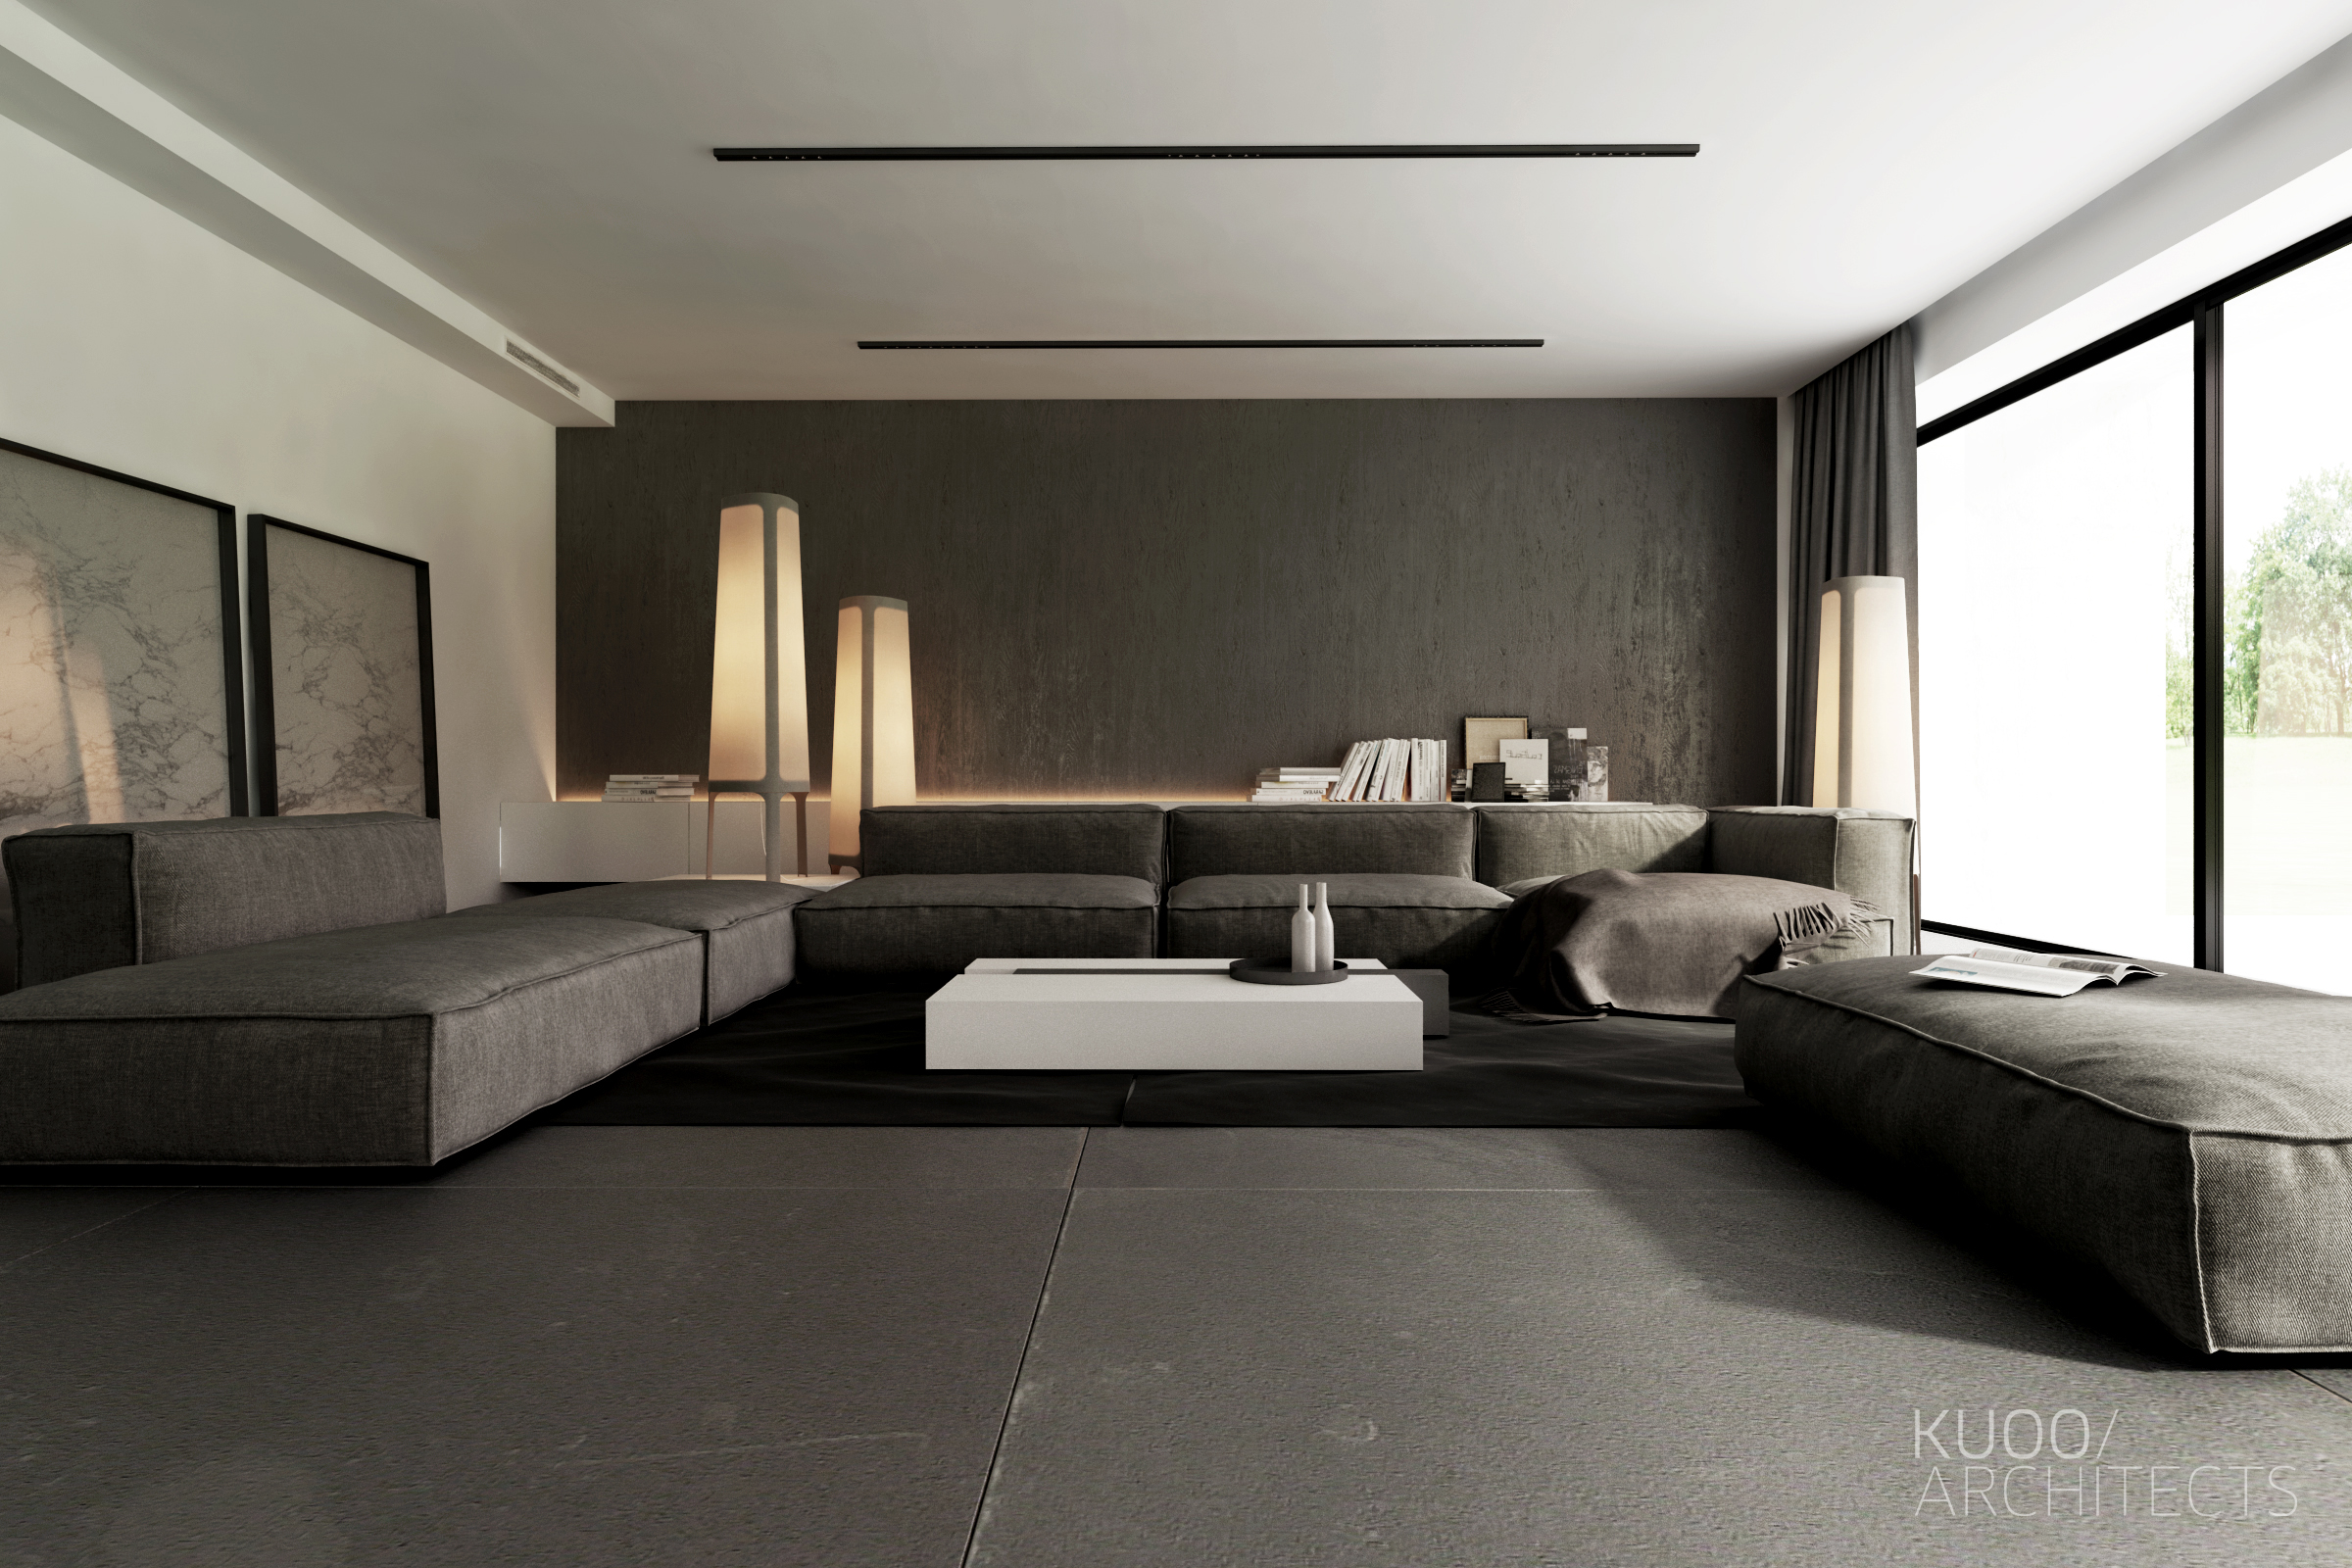 kuoo_architects_interior_design_minimal_contemporary (9) logo